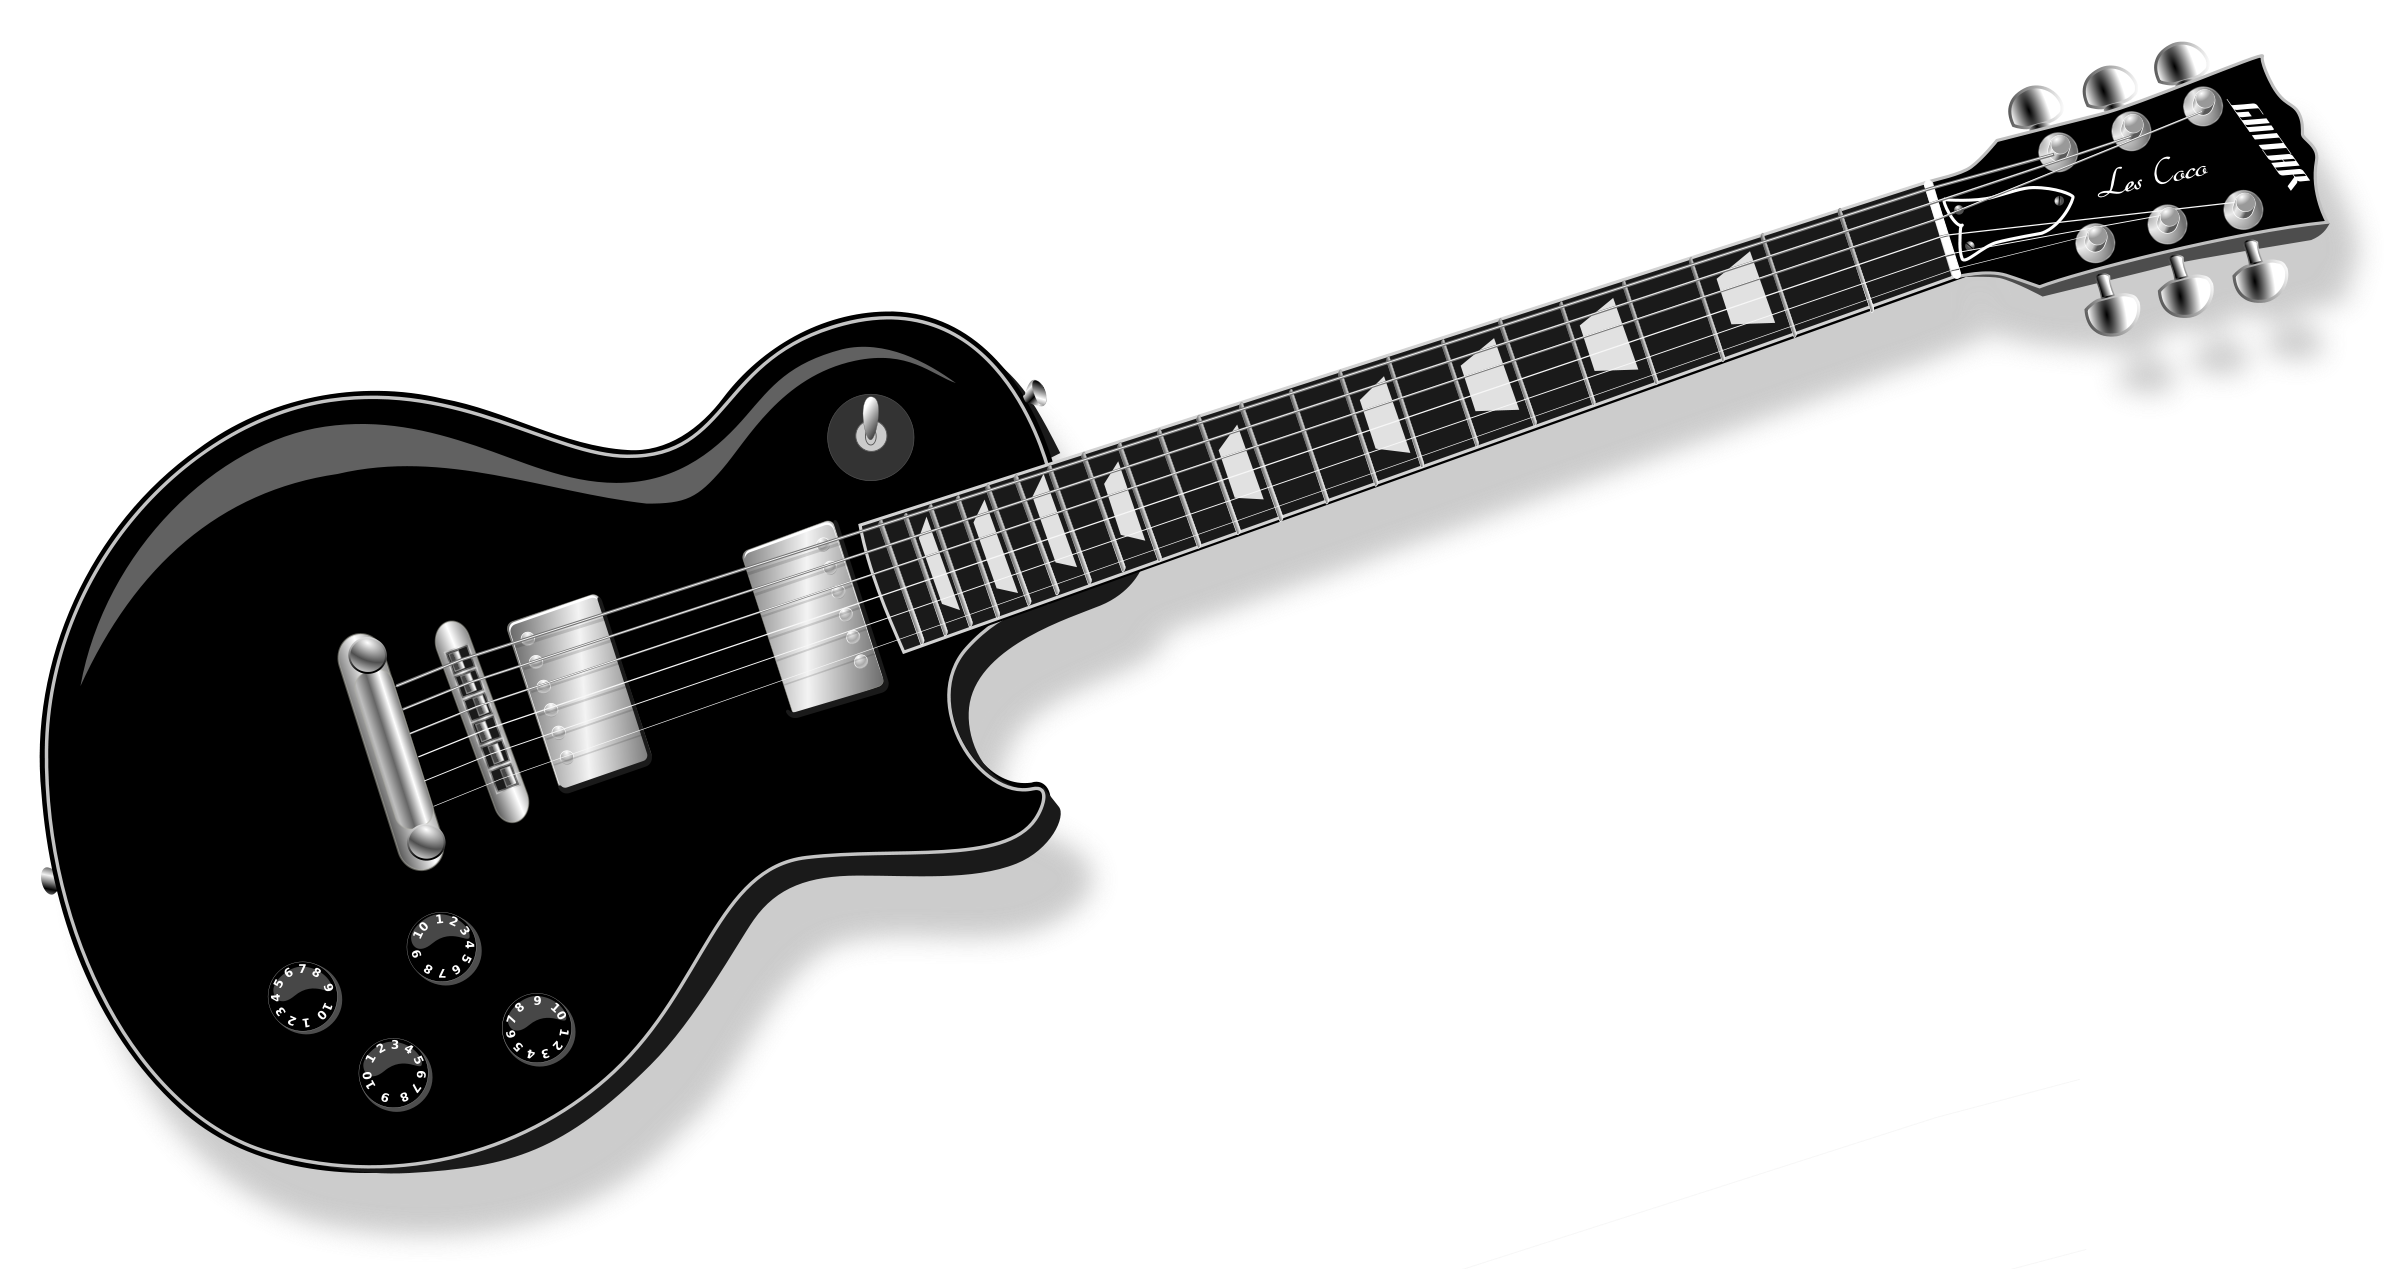 Clipart guitar baby. Yahoo image search results